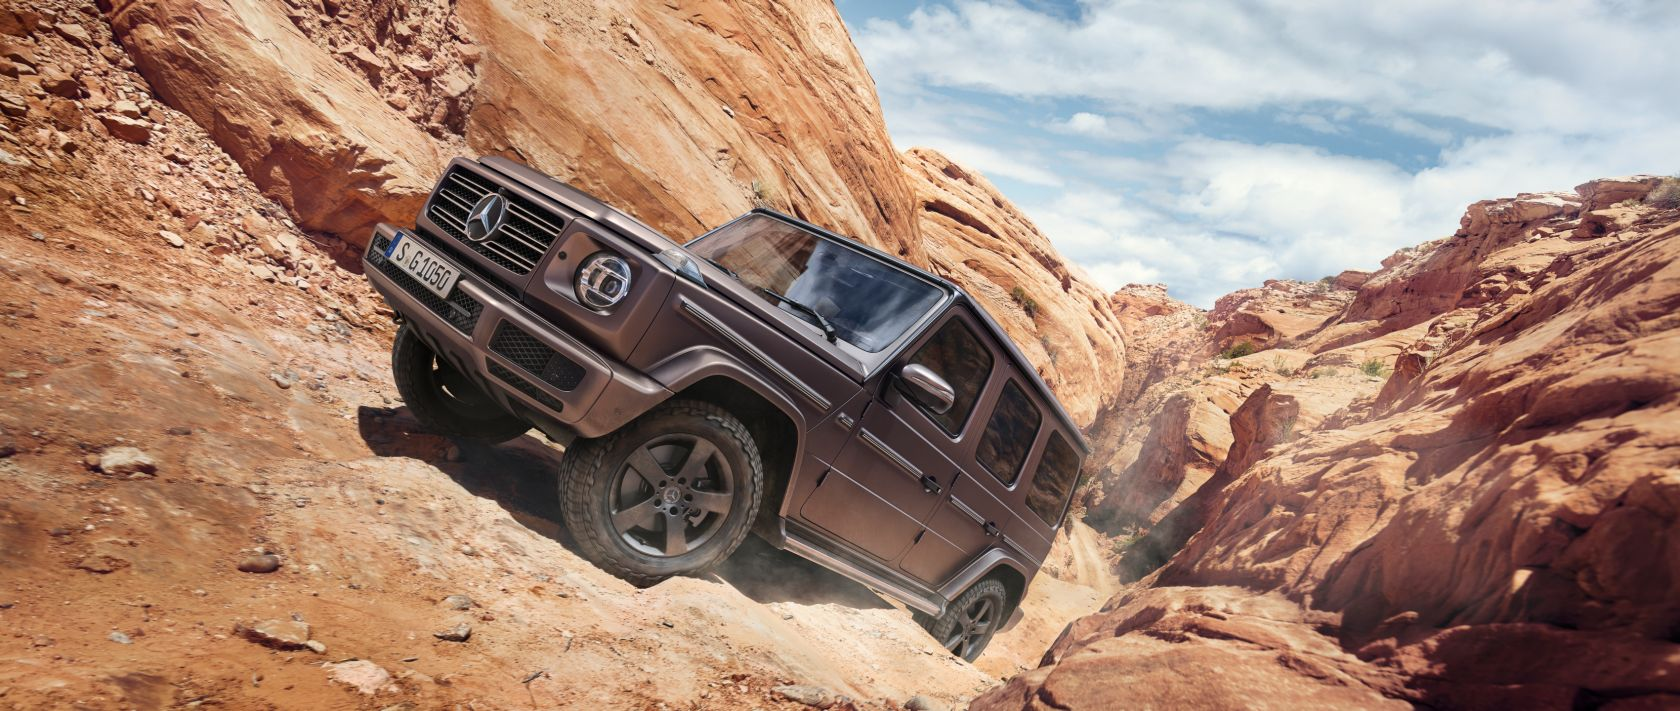 The new 2019 Mercedes-Benz G-Class (W 463) on a dirt road.